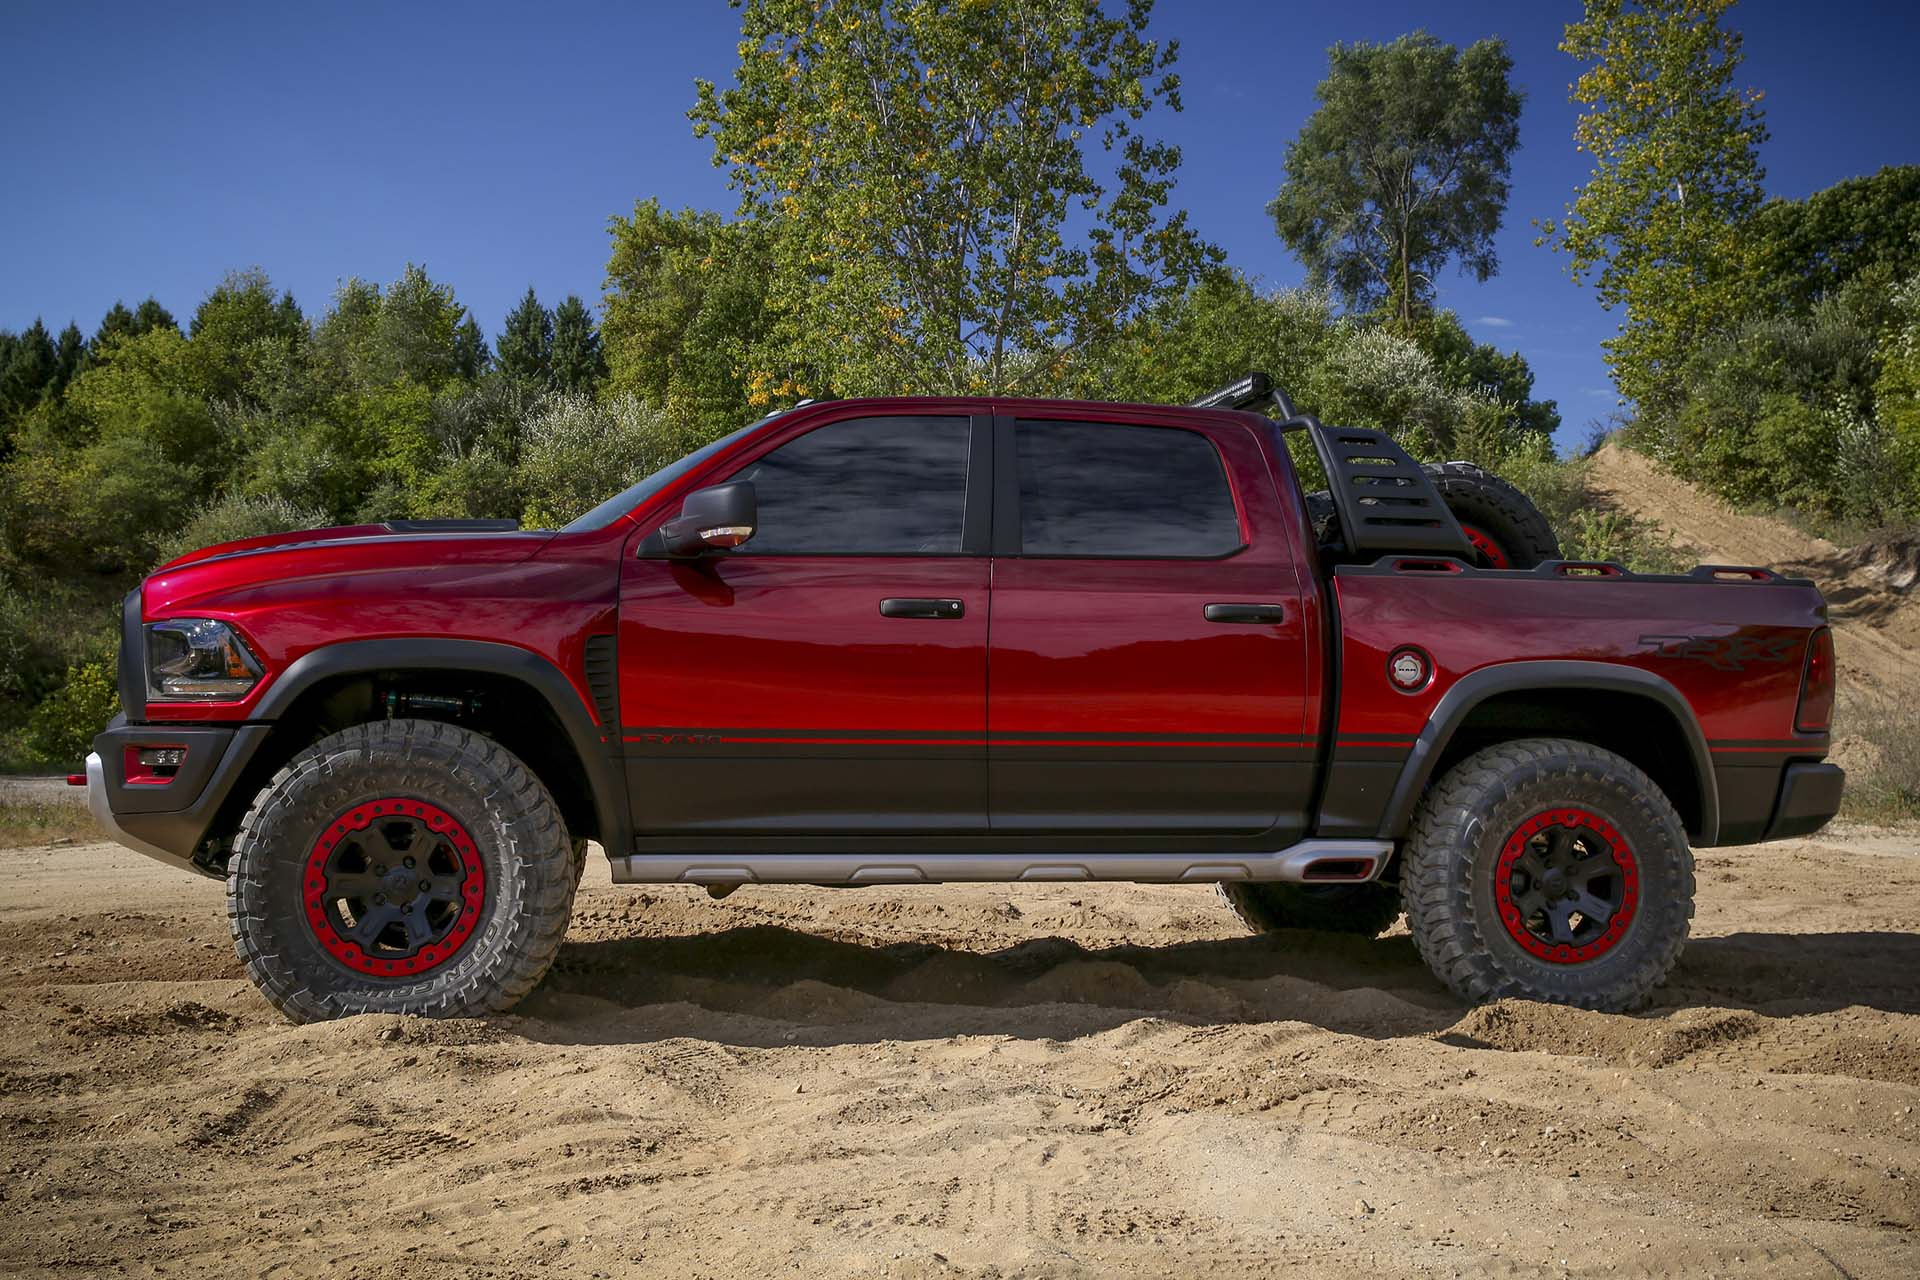 Ram 1500 Ecodiesel Review >> Ram just unveiled the Hellcat-powered Ram Rebel TRX concept